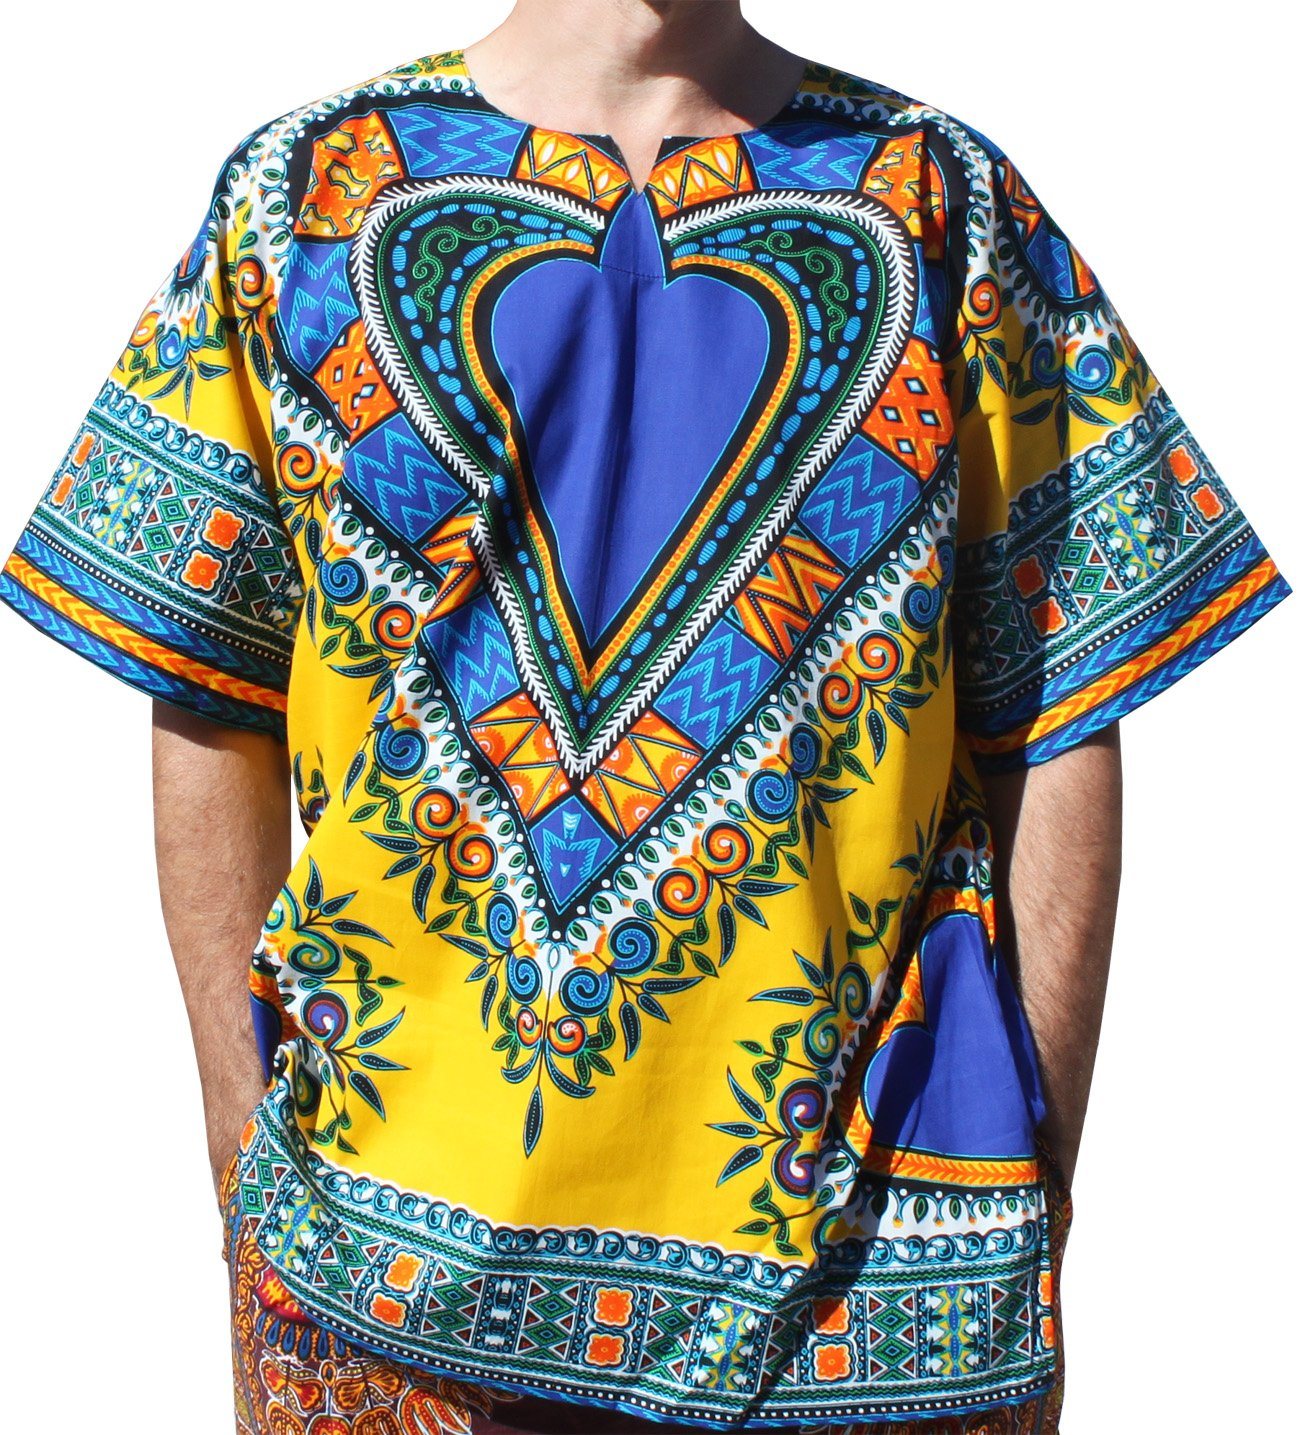 RaanPahMuang Bright Heart Cotton Africa Dashiki Plus Sized Shirt Plain Front, XXXX-Large, Yellow by RaanPahMuang